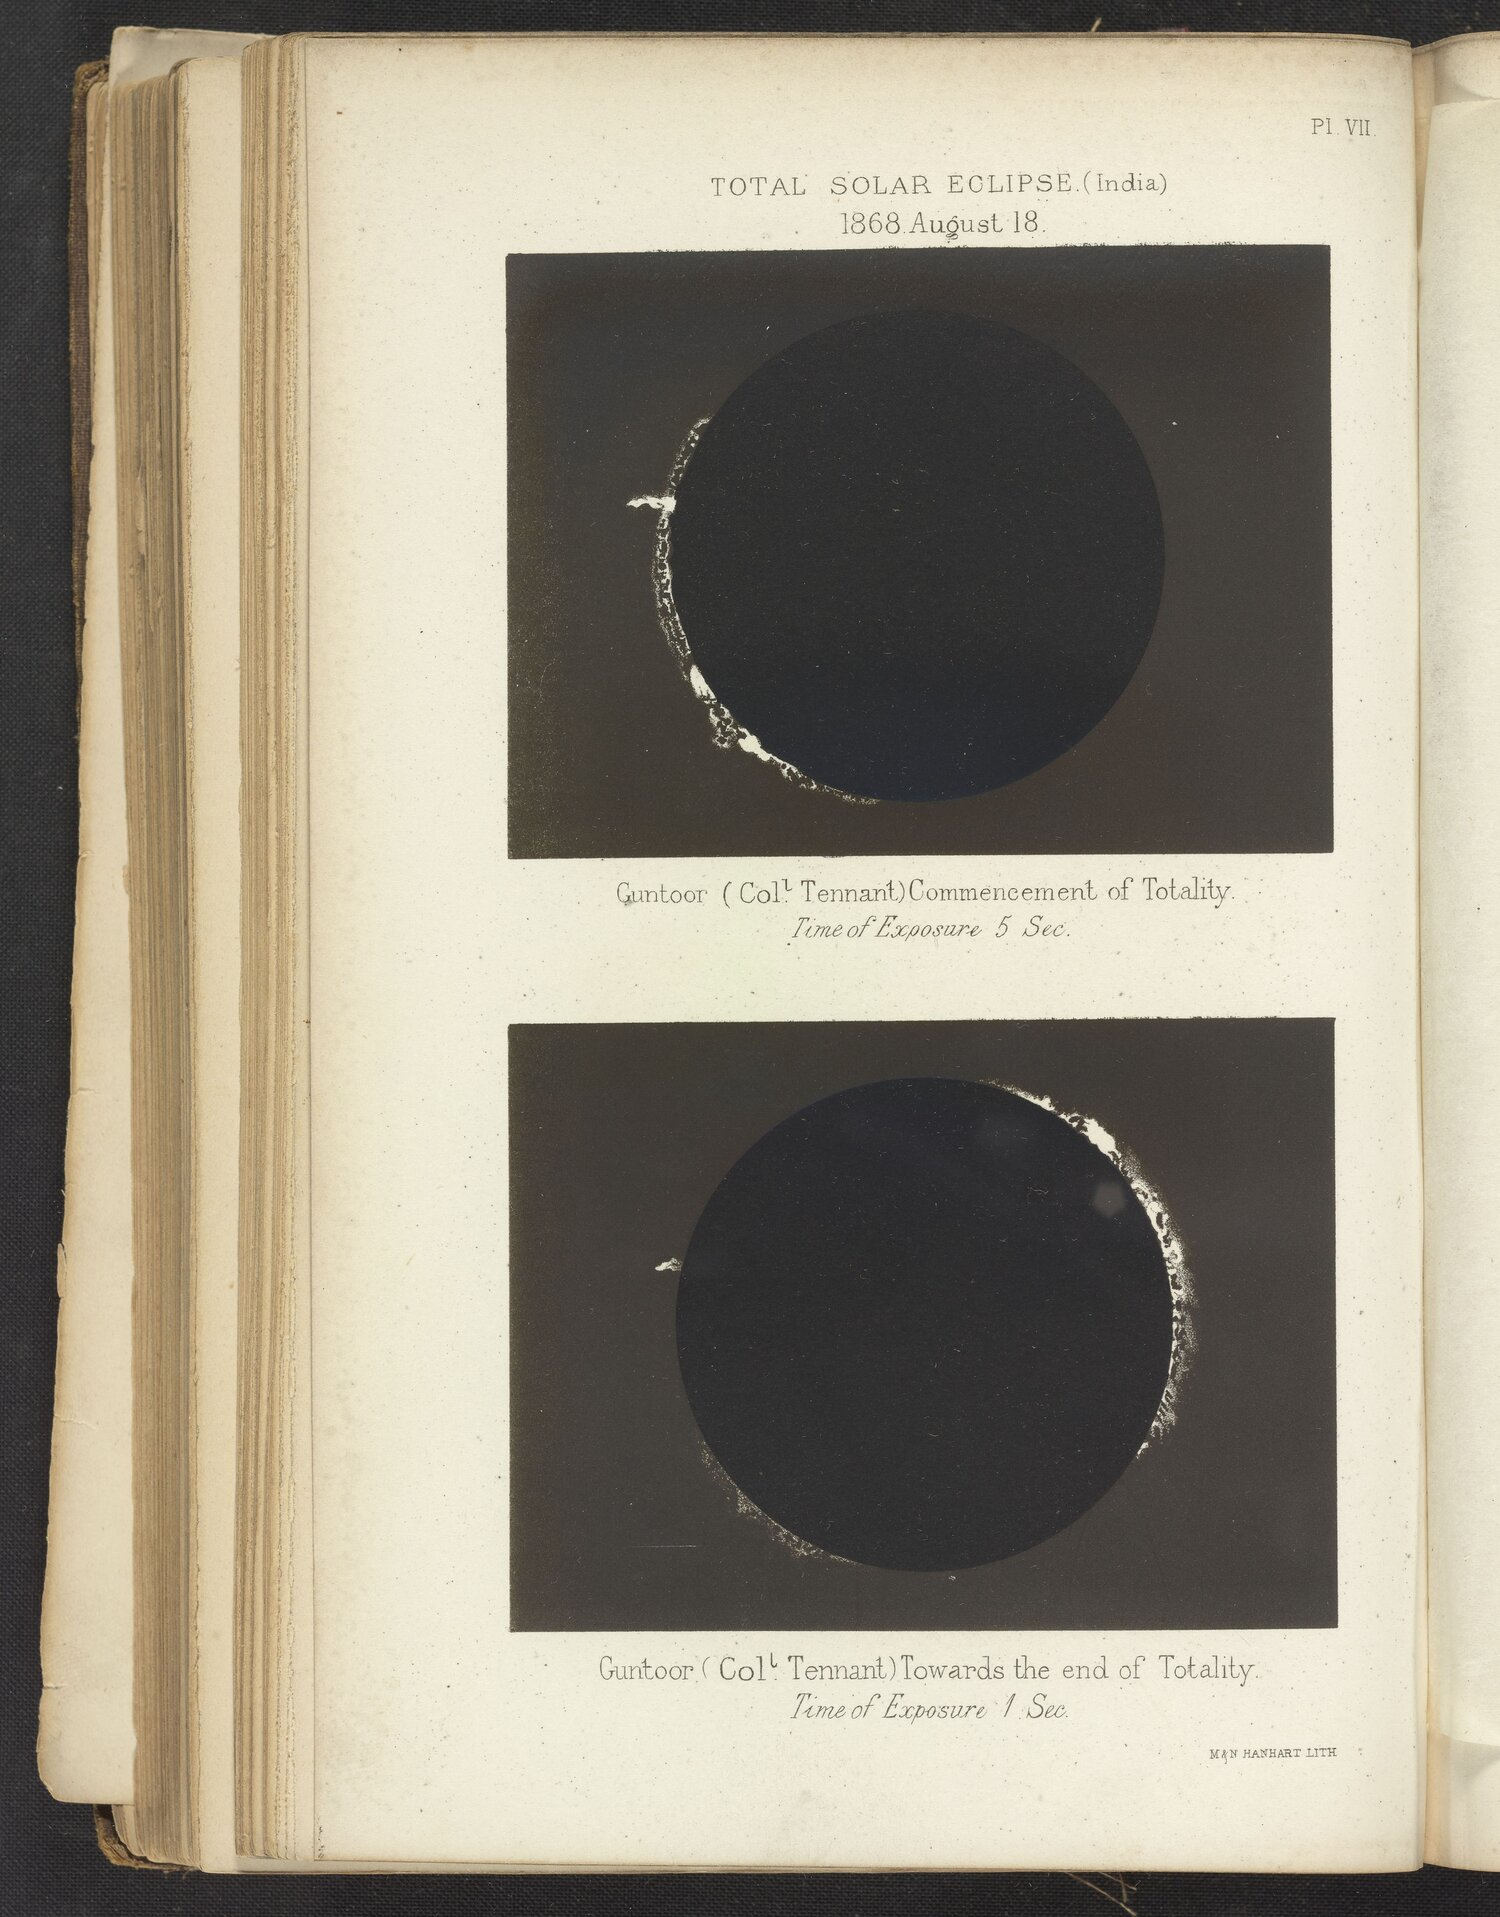 Prints from photographs taken by Colonel James Francis Tennant (1829-1915). The upper picture shows the eclipse at the moment of totality, and the lower one immediately before its cessation. Observed from Guntoor, India. Total Solar Eclipse Observed from India in 1868, Pl. VII, published 1872, courtesy Science History Institute.